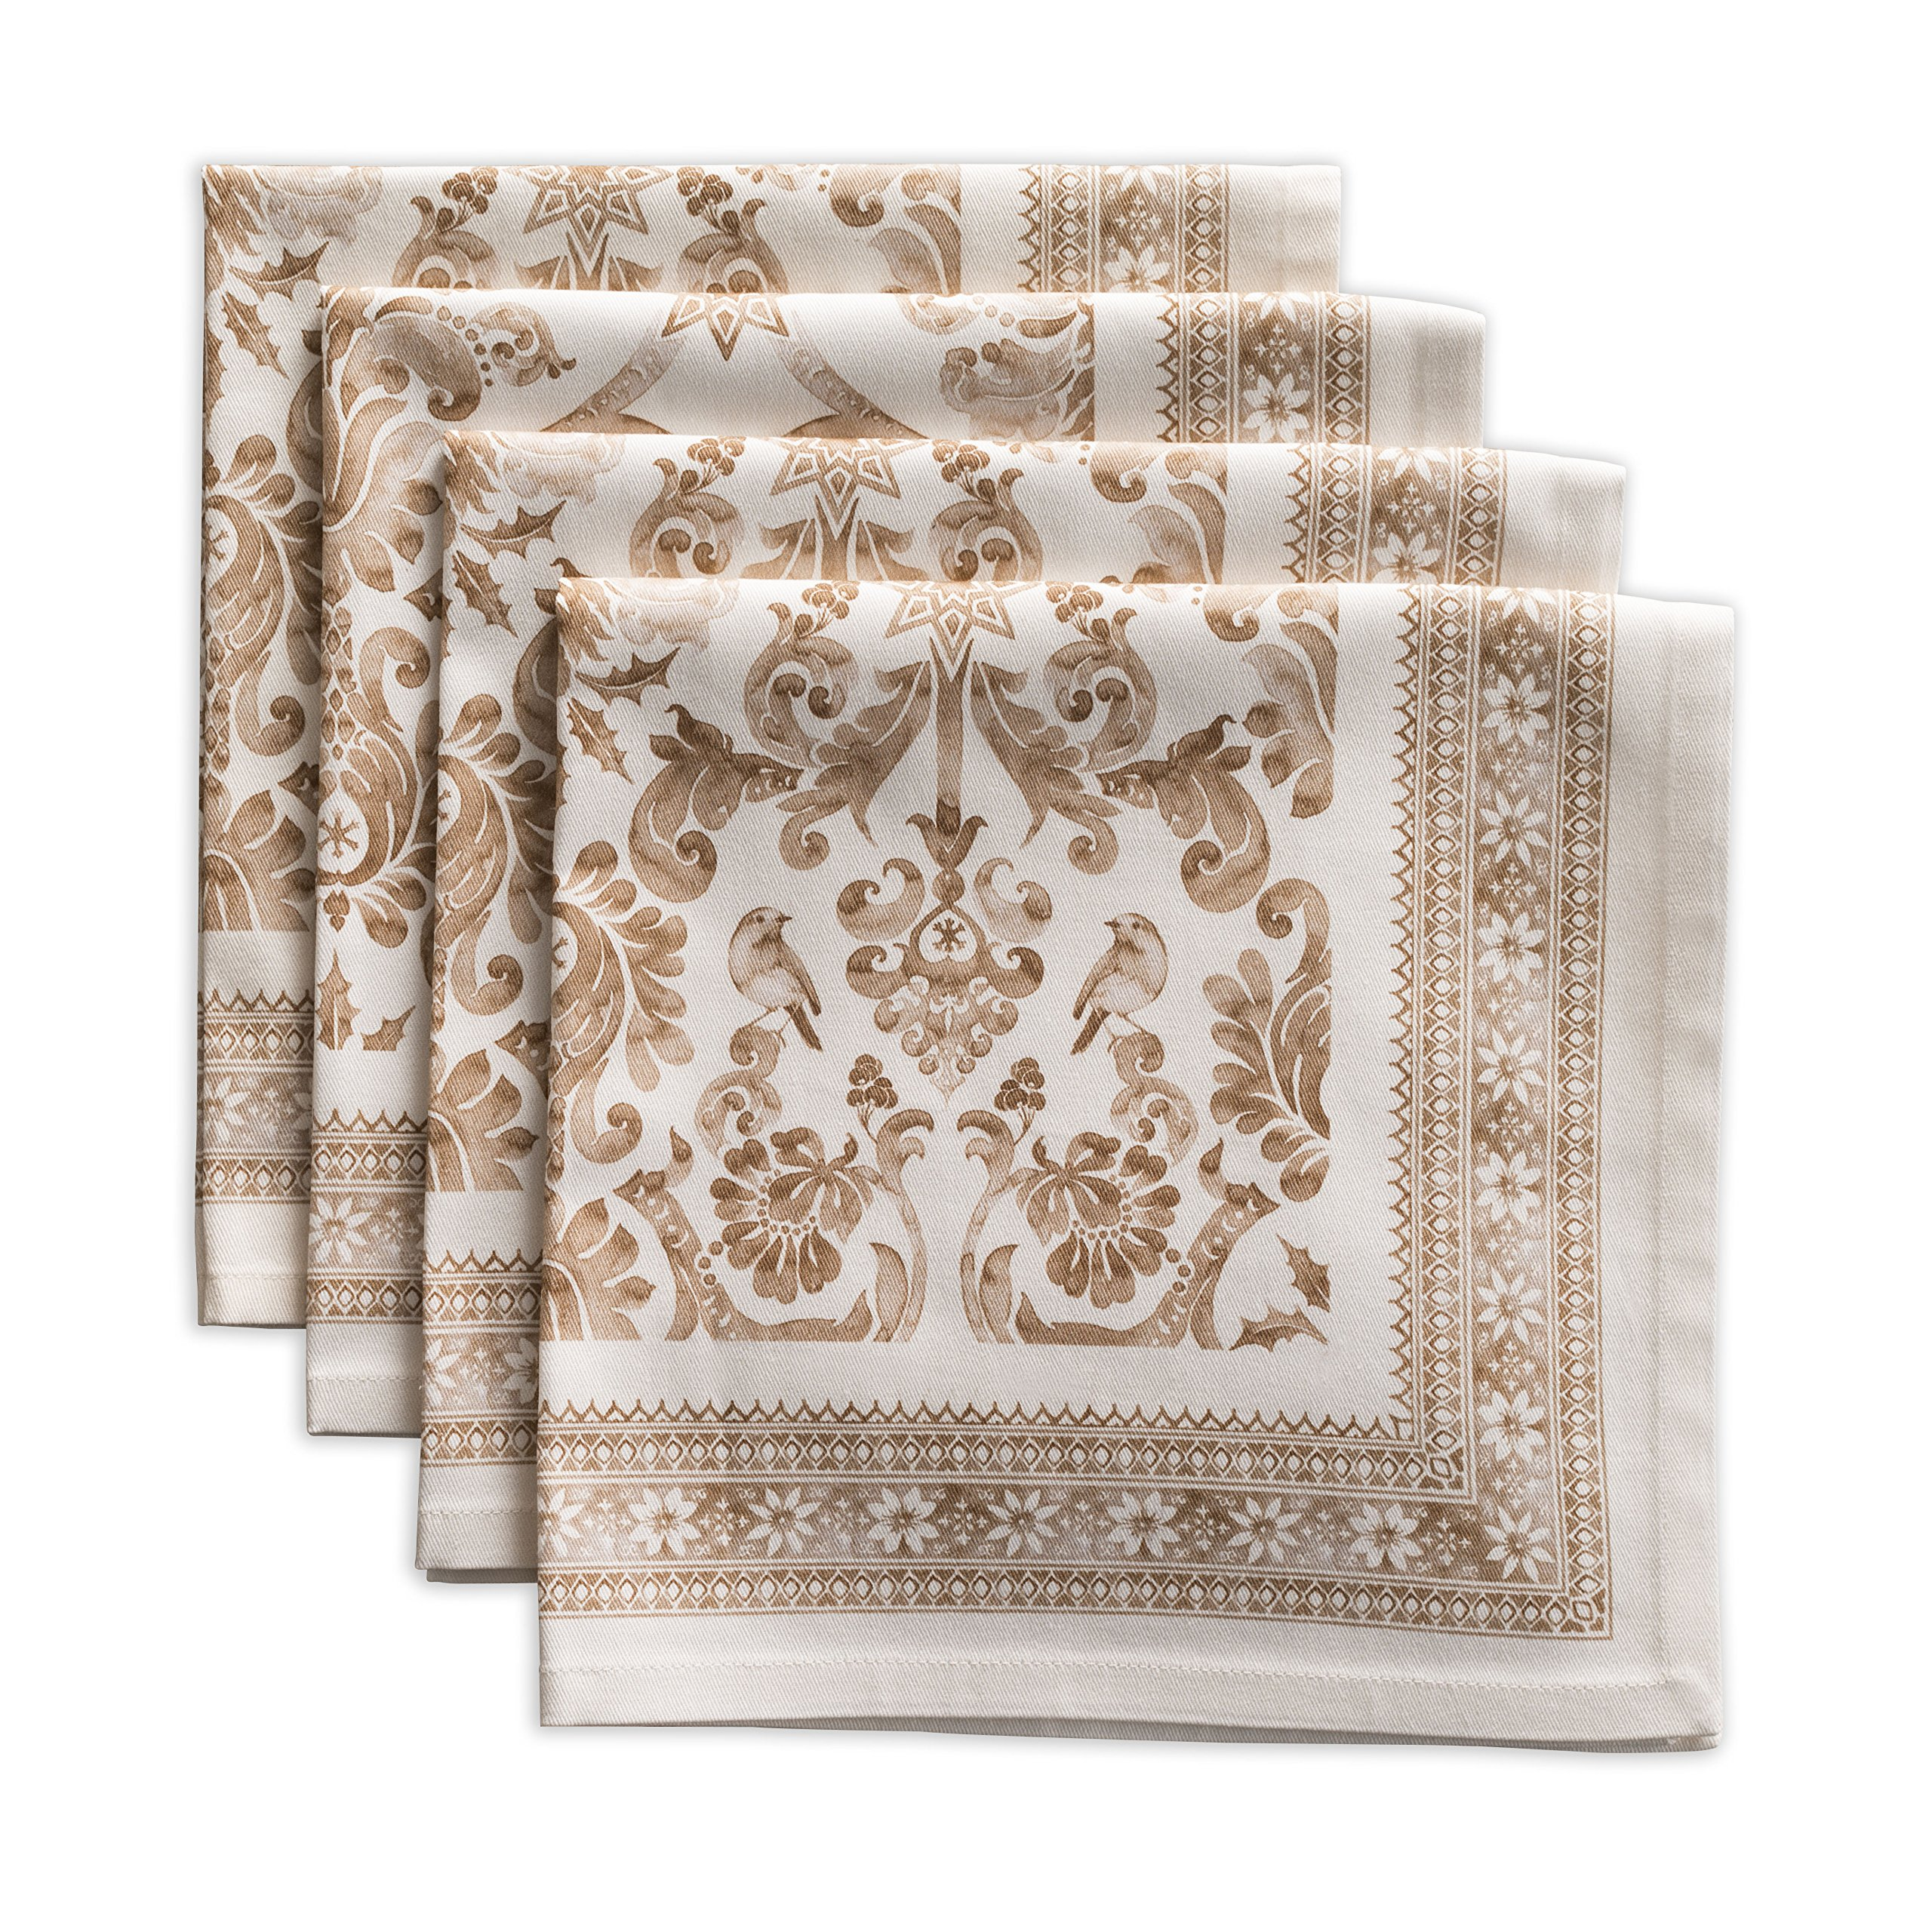 Maison d' Hermine Allure 100% Cotton Set of 4 Napkins 20 Inch by 20 Inch.